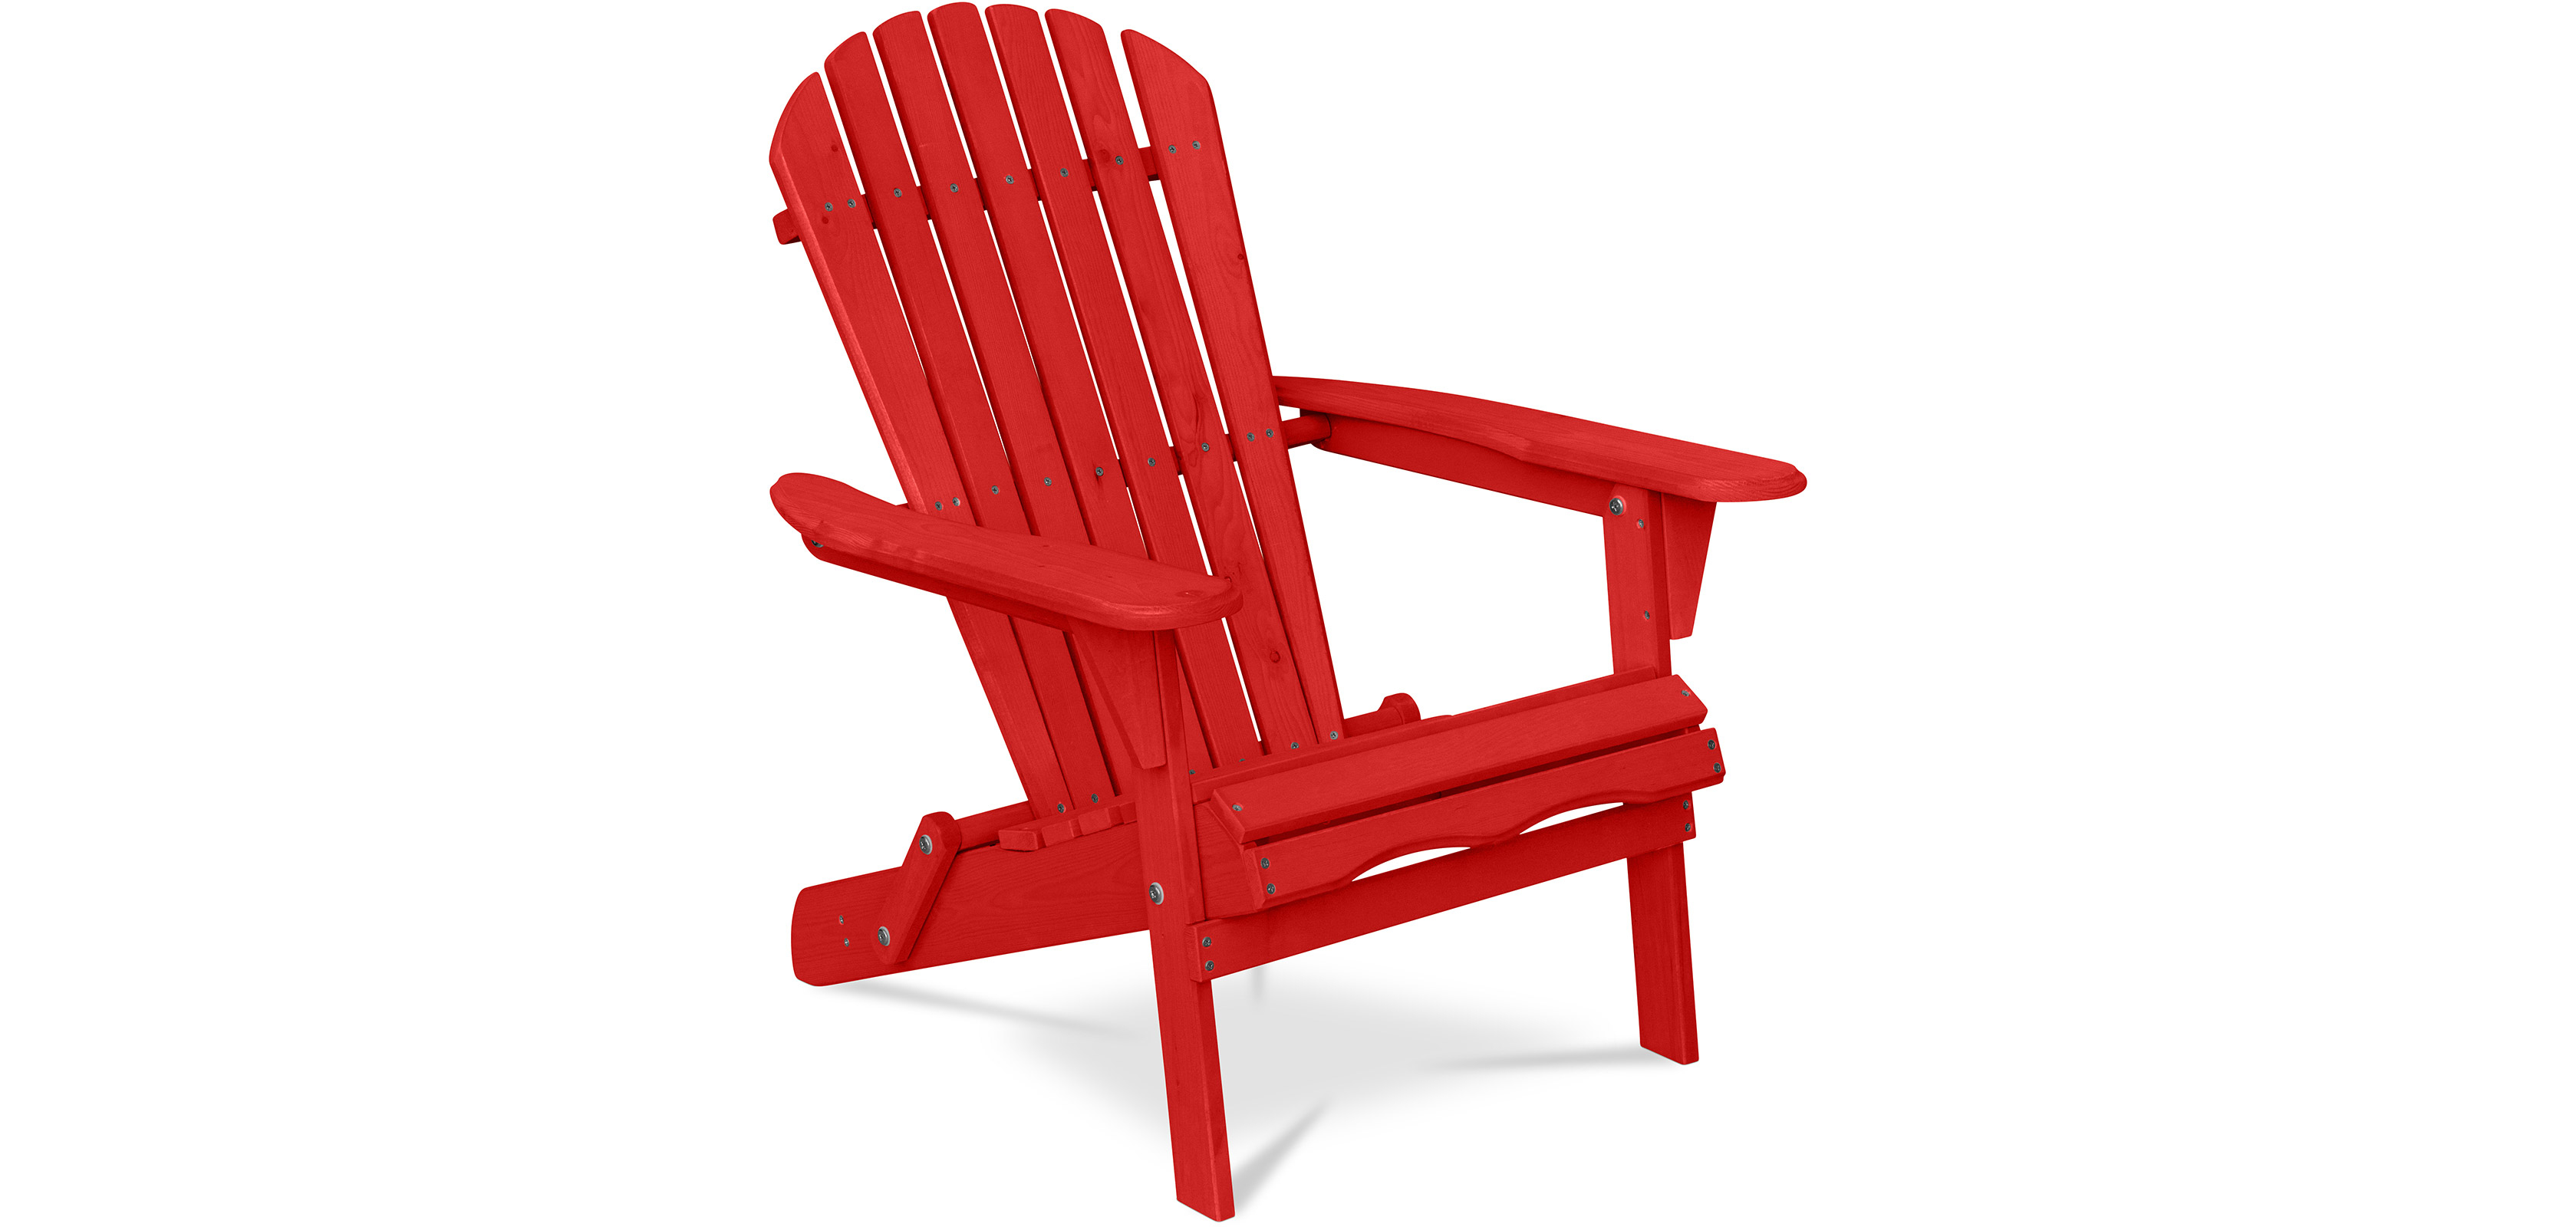 Buy Adirondack Style Garden Chair - Wood Red 59415 - in the EU